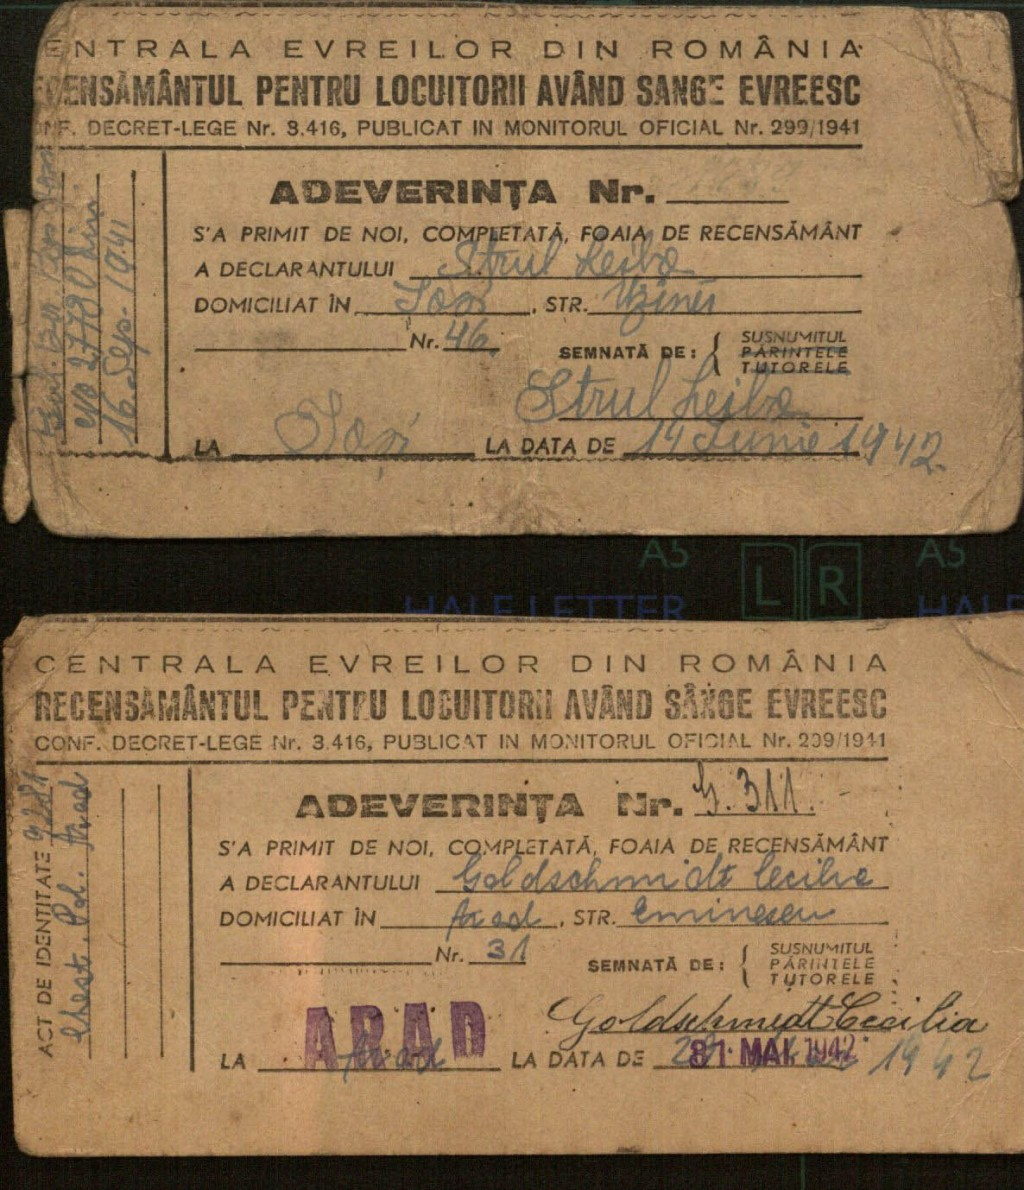 Census Card [LCID: 2015dl1e]